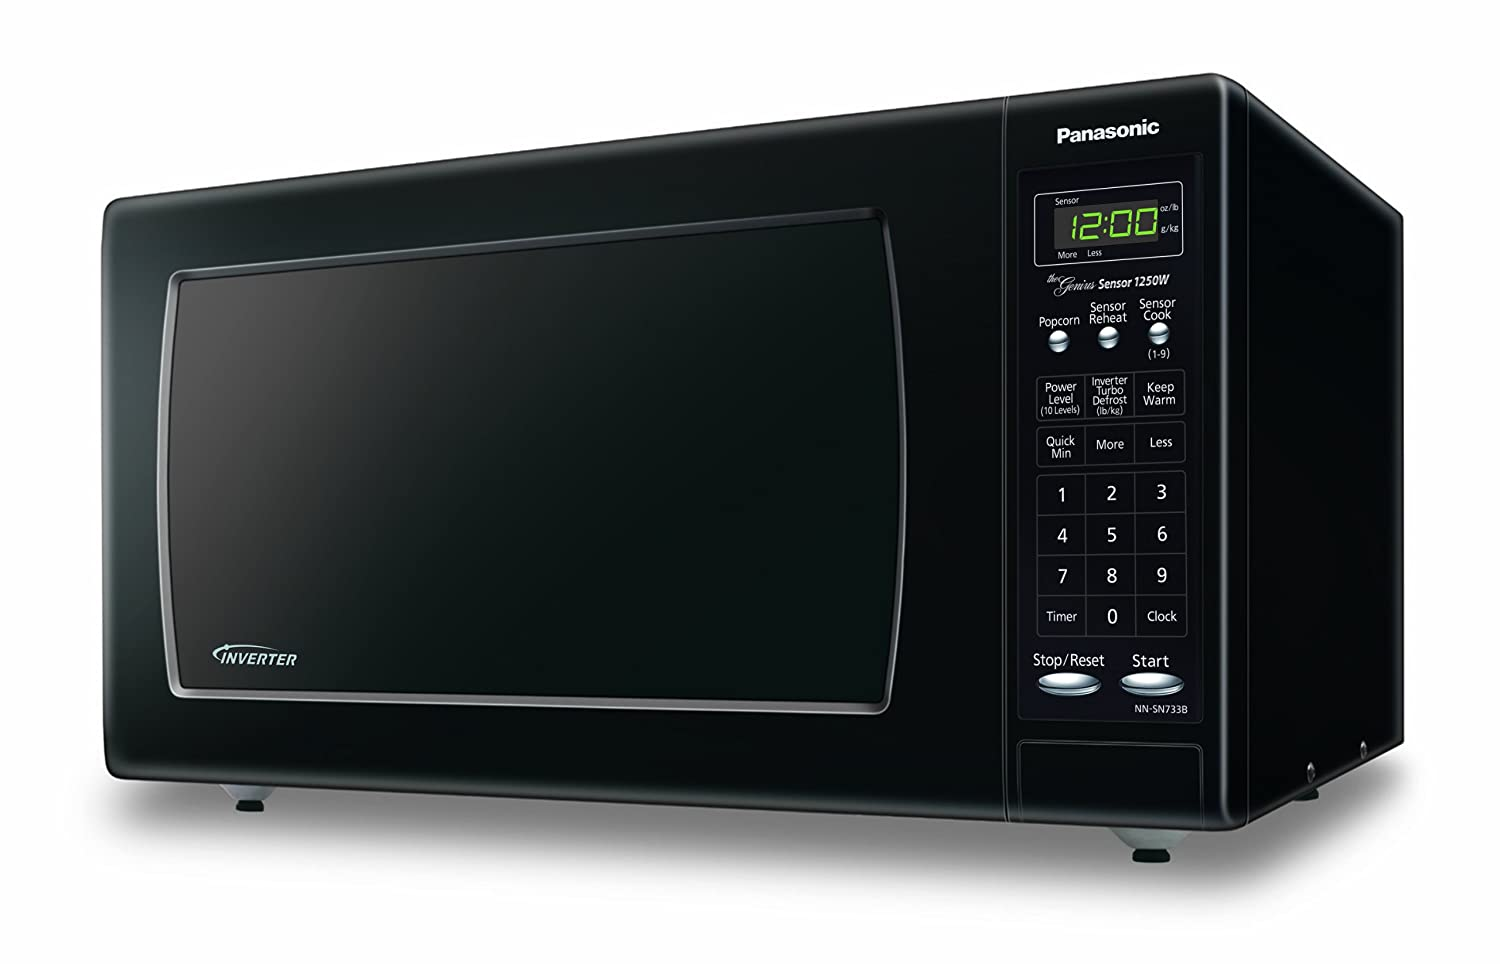 Panasonic NN-SN733BAZ Black 1.6 Cu. Ft. Countertop Microwave Oven with Inverter Technology